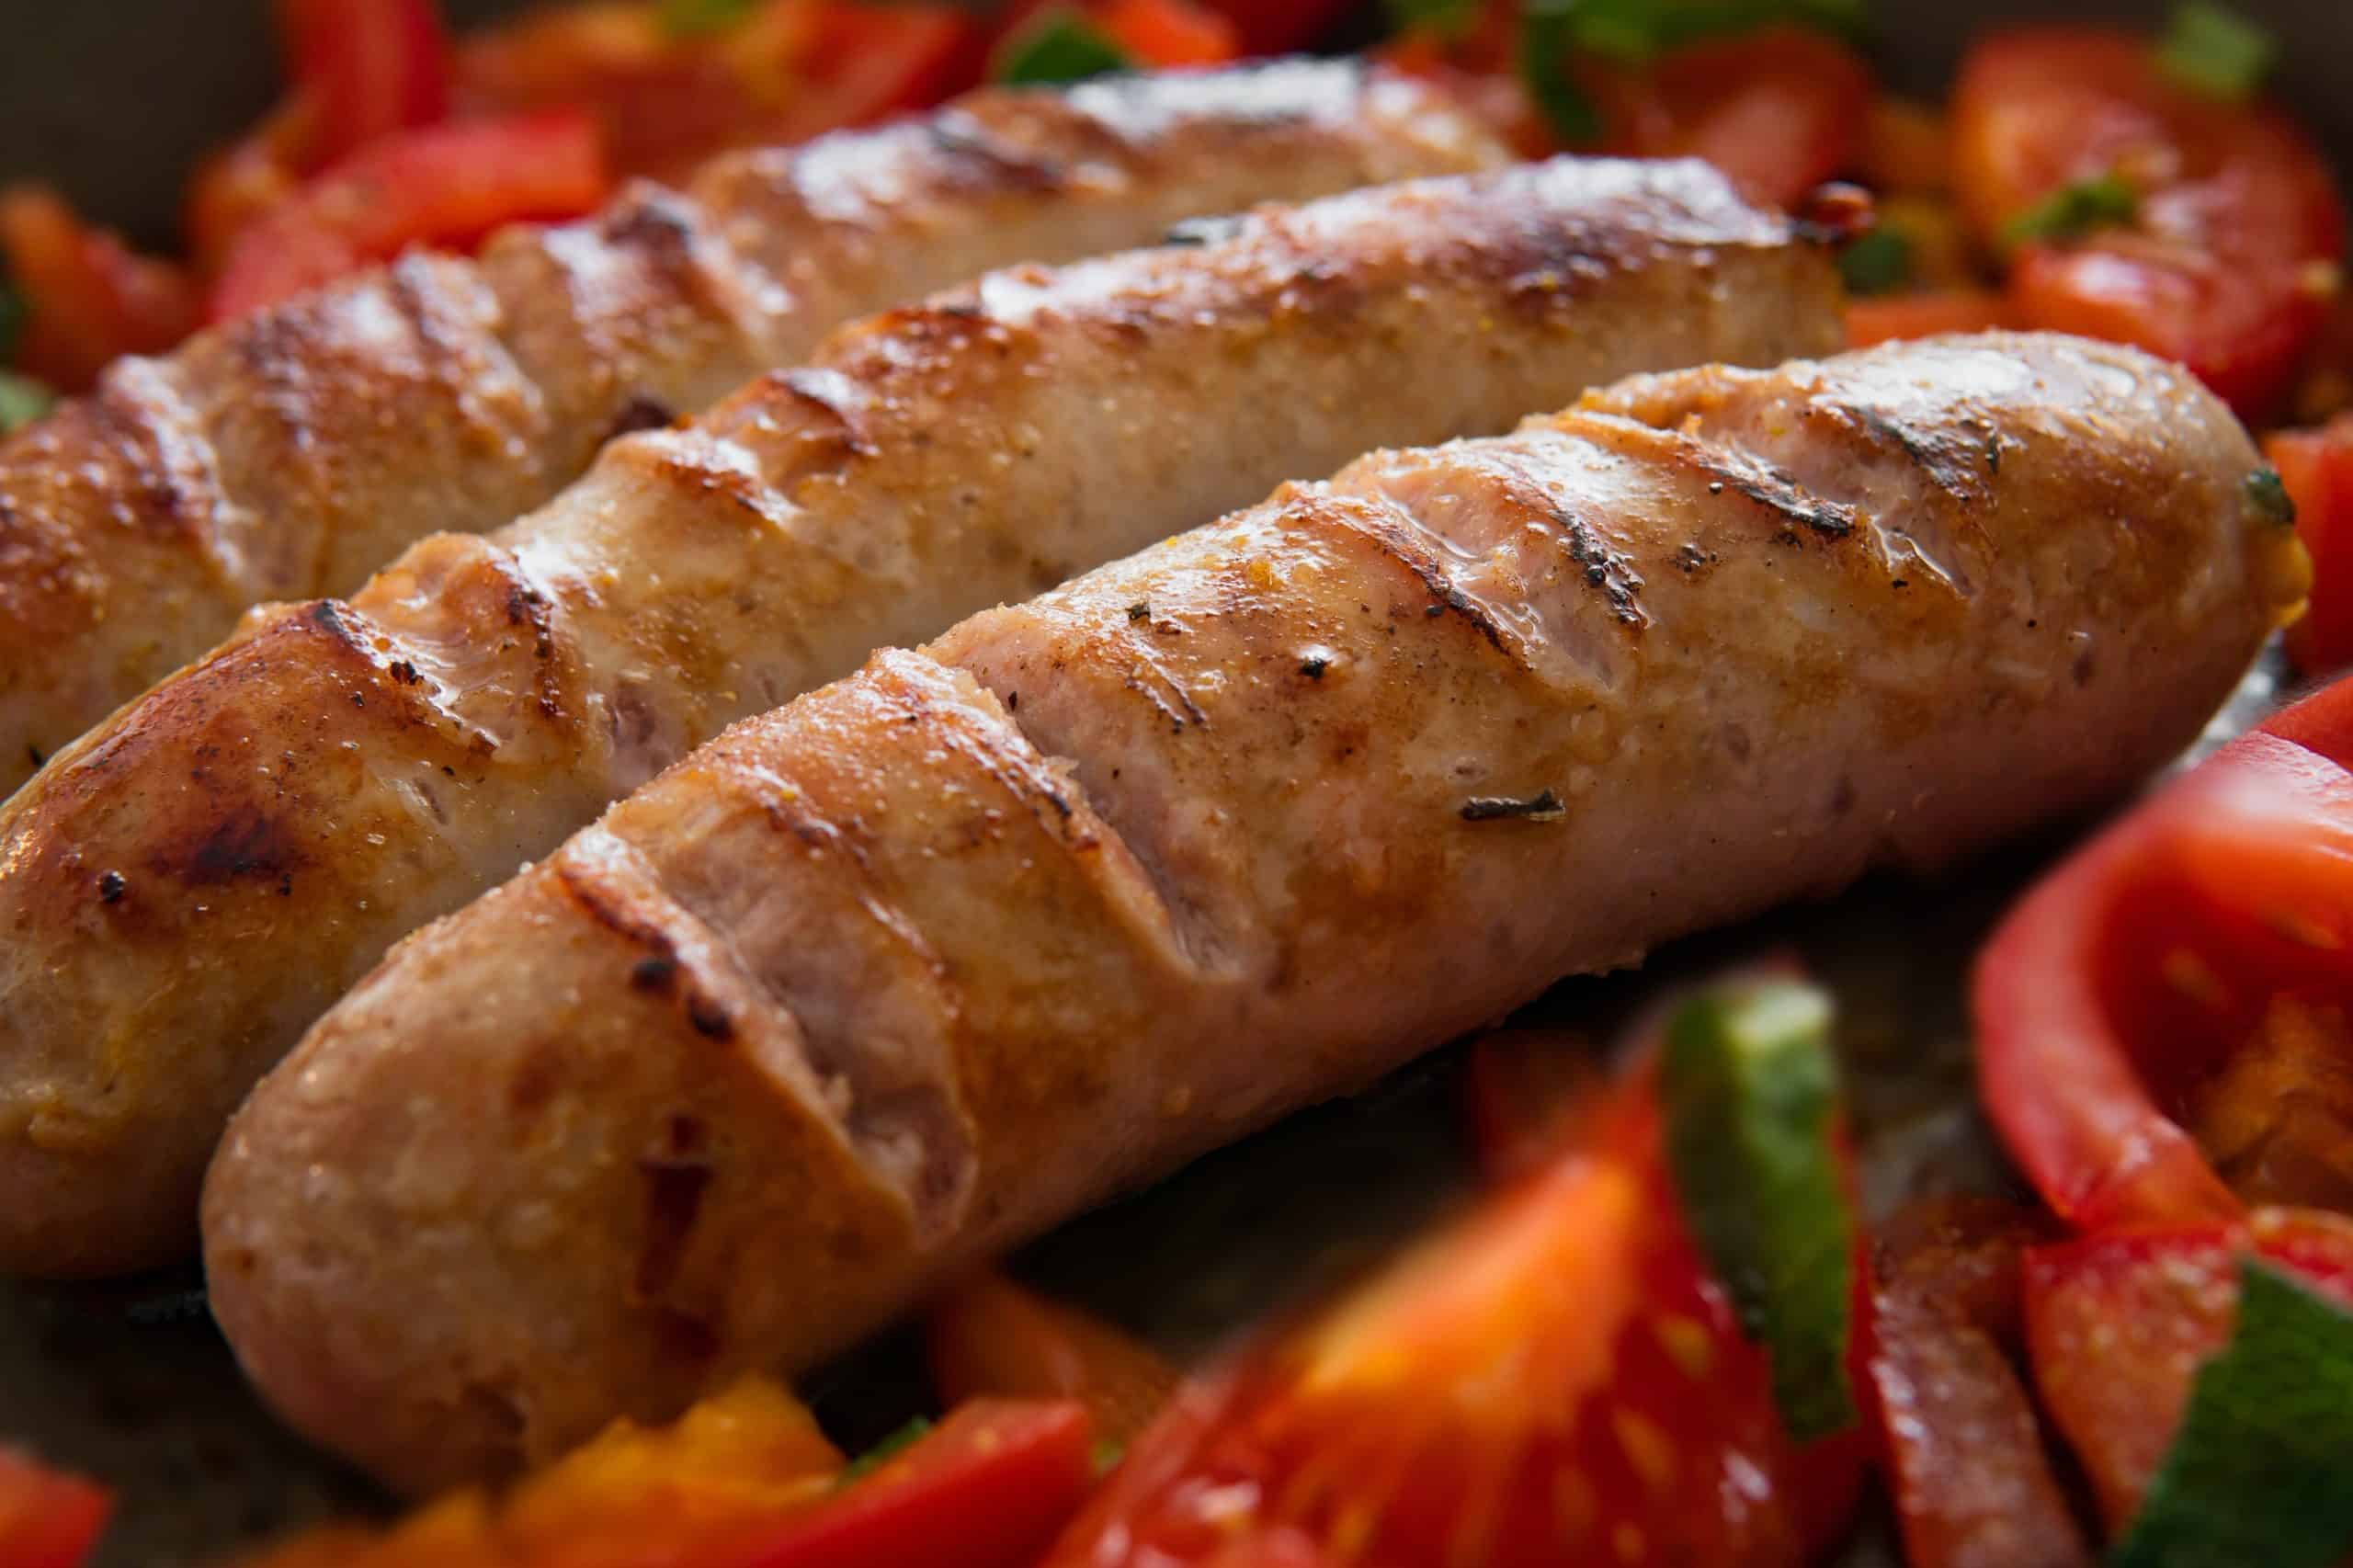 Cooking Sausage Recipes at Home